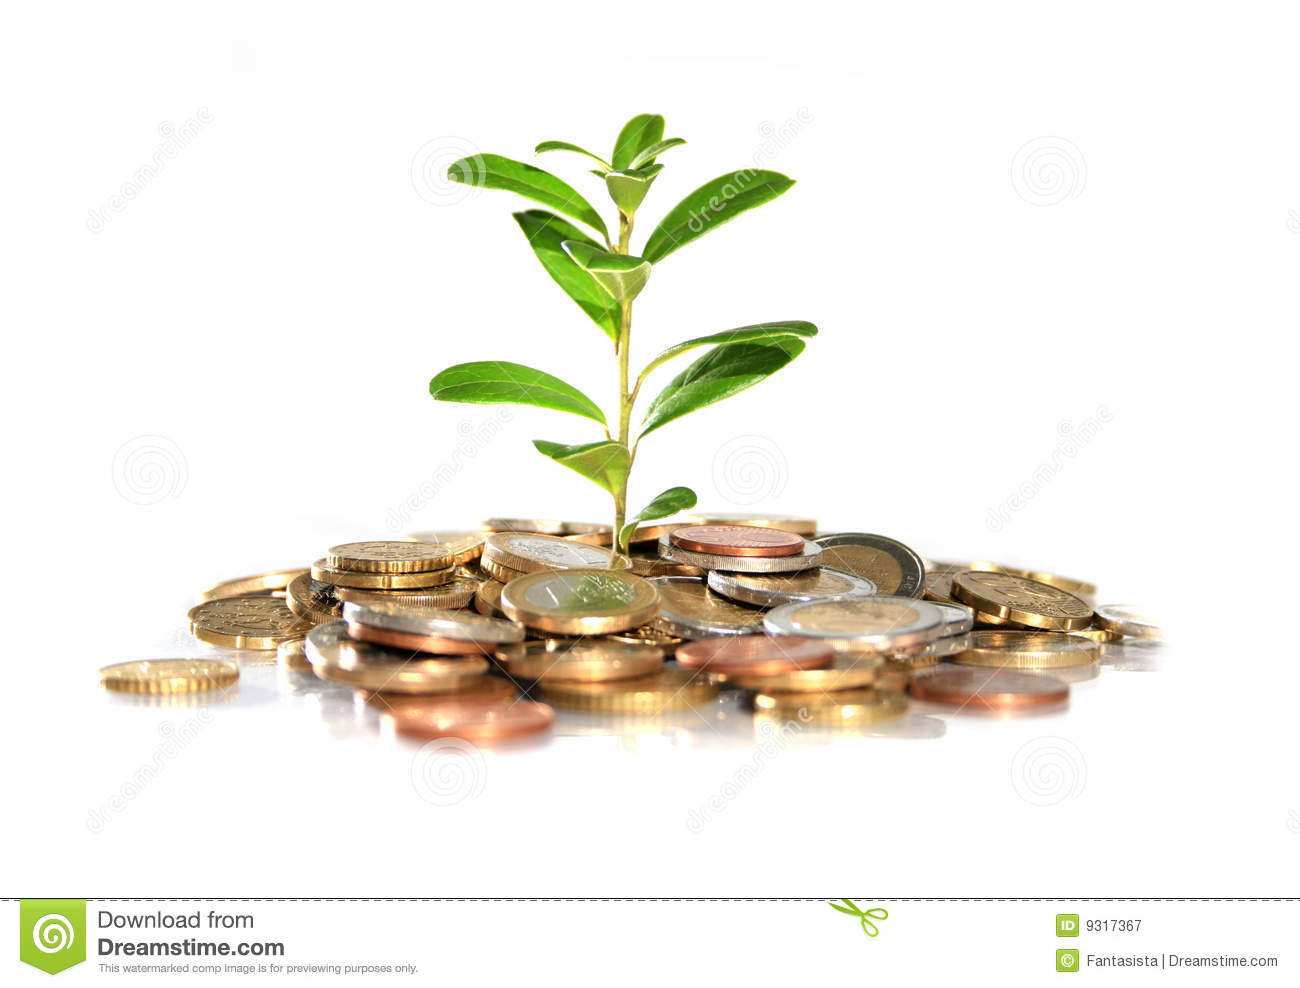 Royalty free plant images svg royalty free library Money And Plant. Royalty Free Stock Photography - Image: 9317367 svg royalty free library